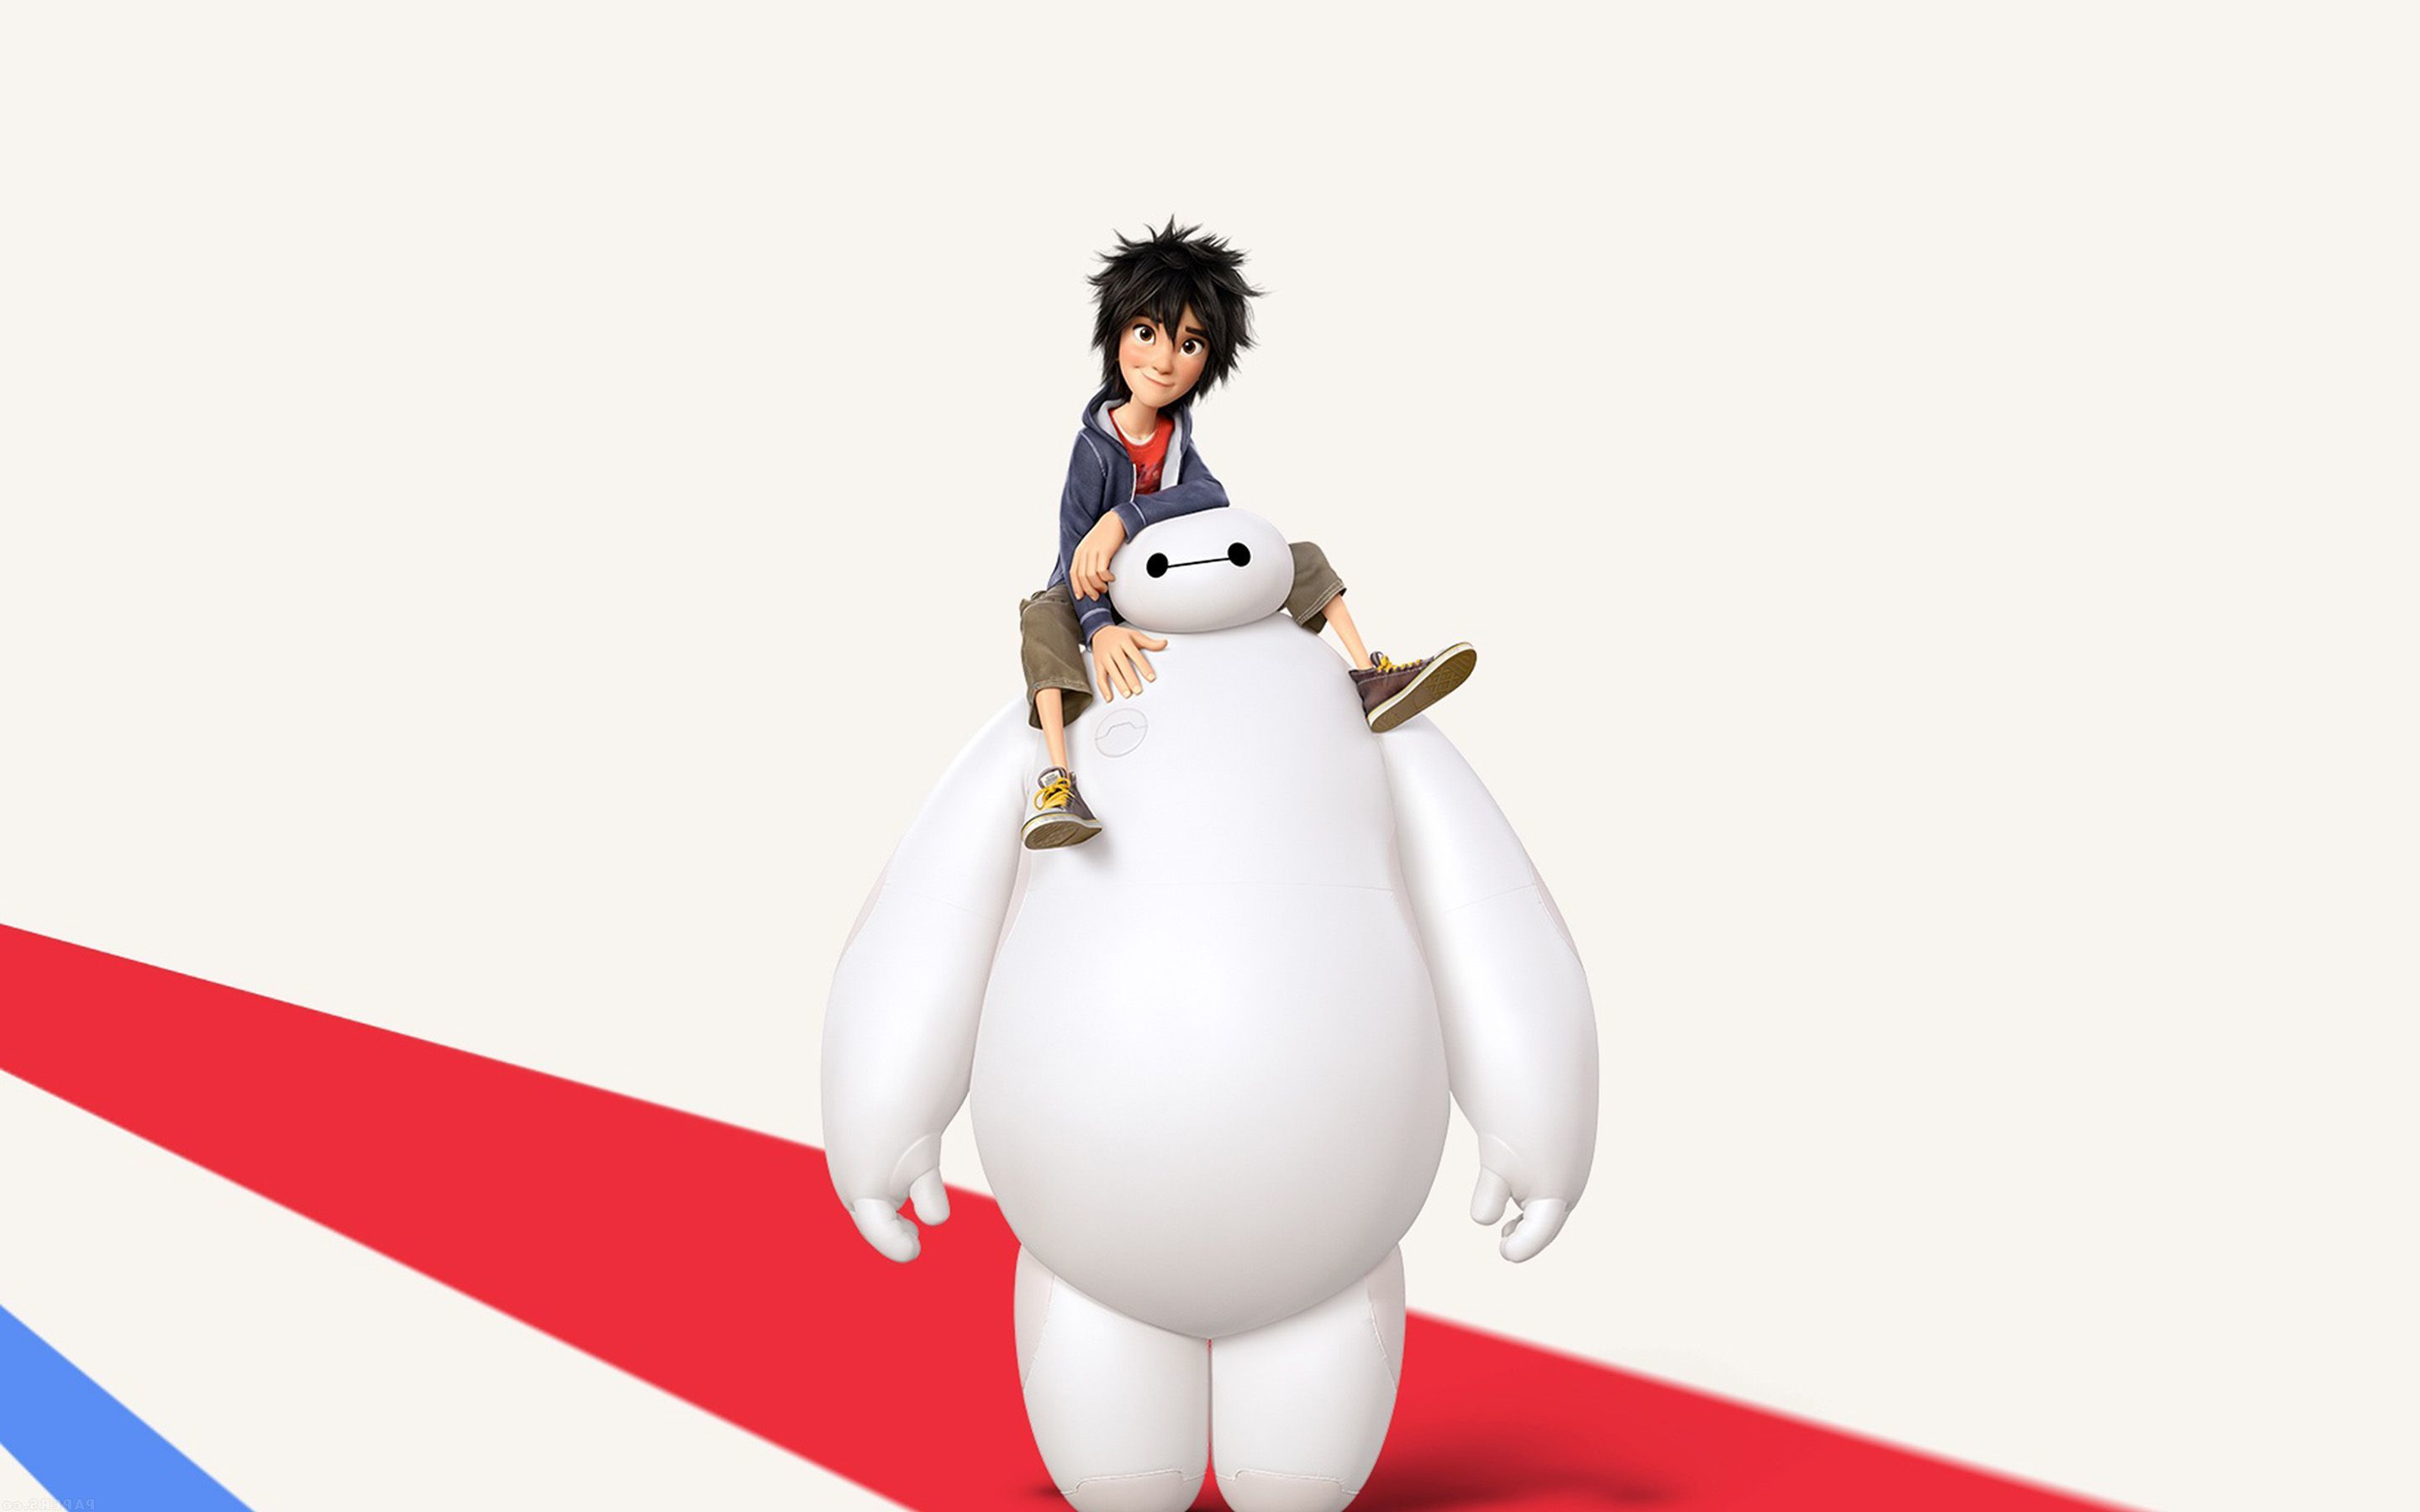 Free Download Baymax And Hiro In Big Hero 6 Widescreen Wallpaper 21768 2880x1800 For Your Desktop Mobile Tablet Explore 47 Baymax Big Hero 6 Wallpaper Baymax Big Hero 6